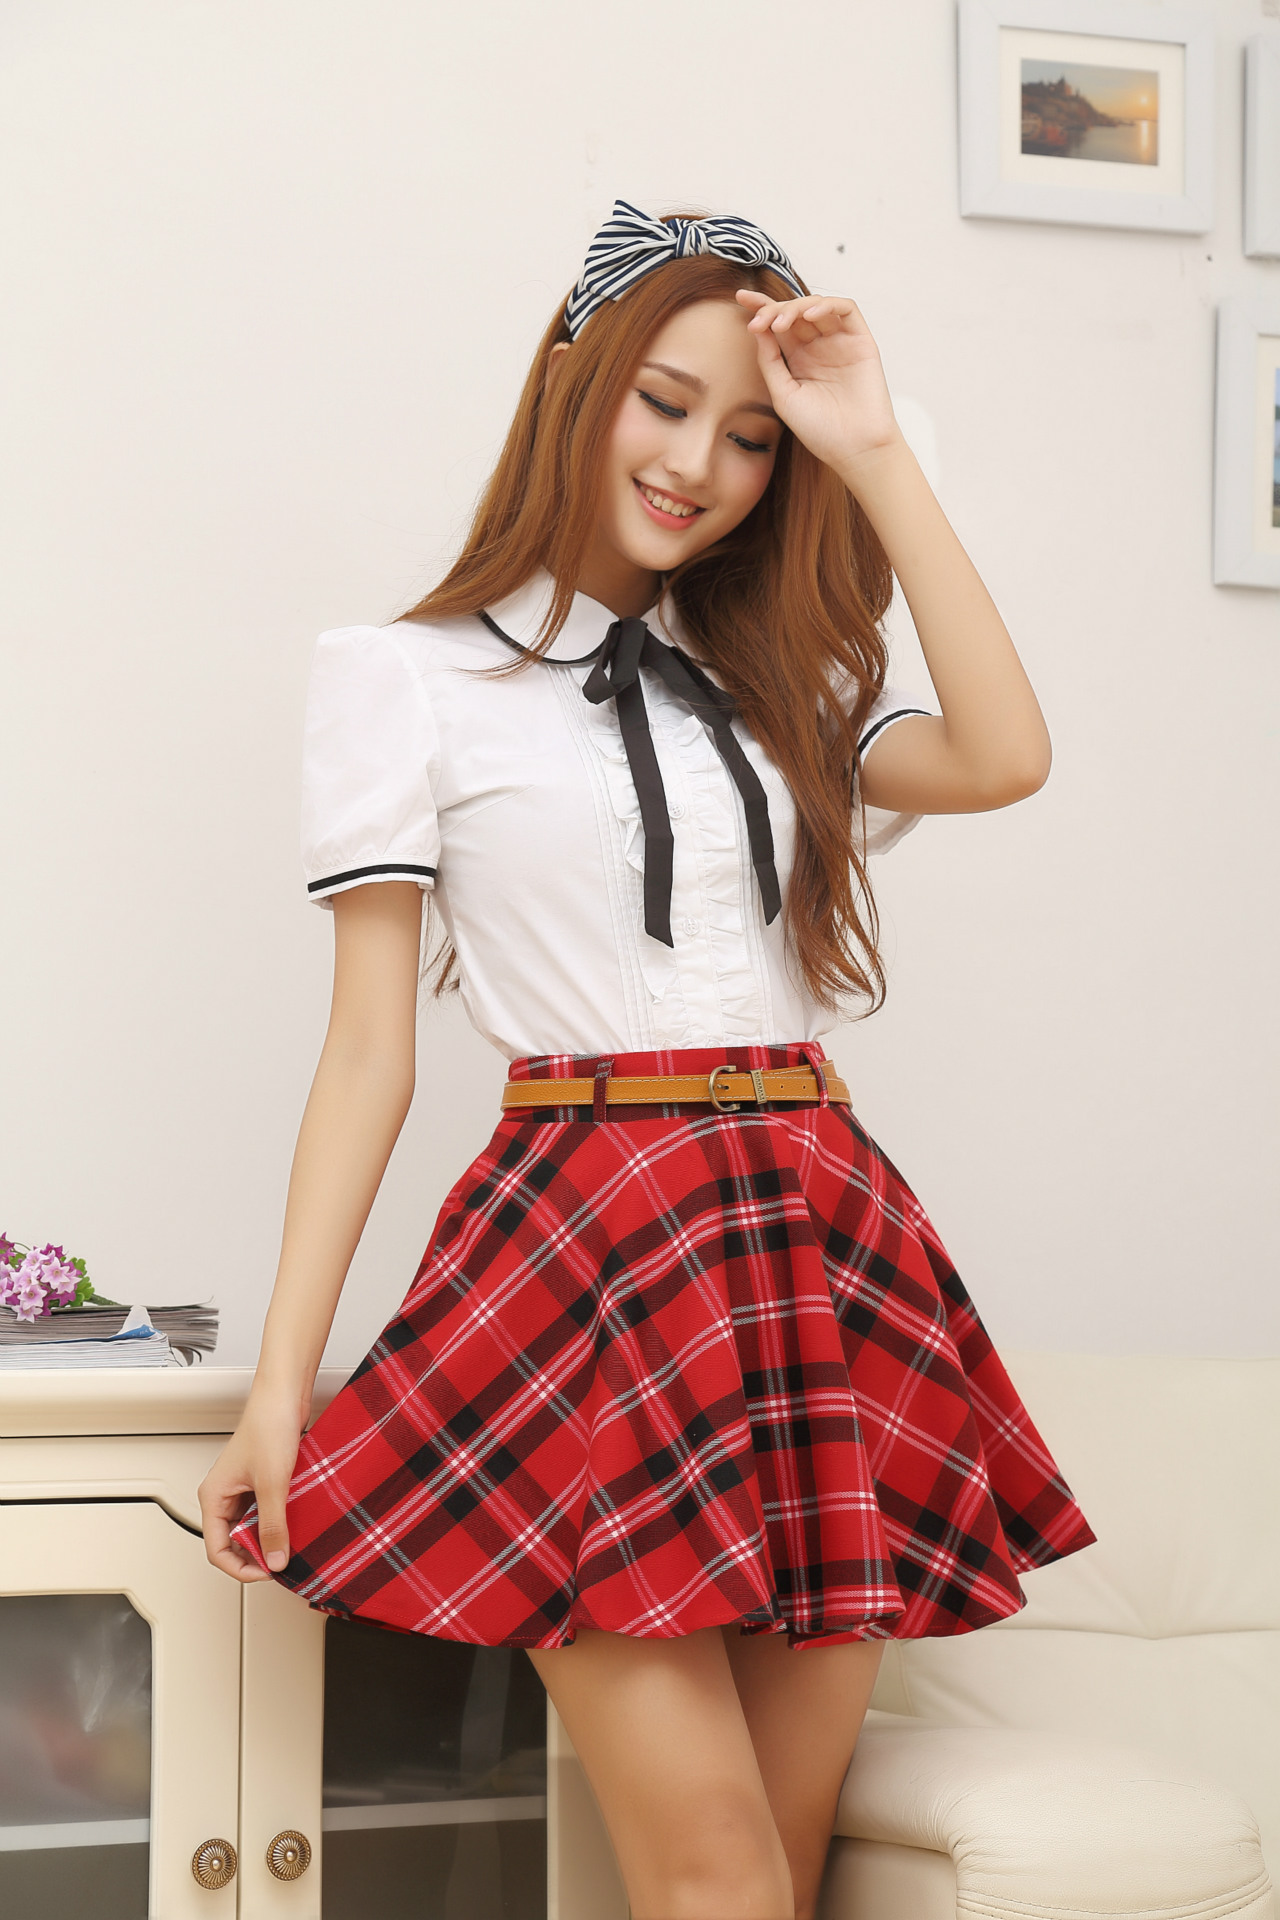 Japanese School Uniform Girls Korean Student College -2985